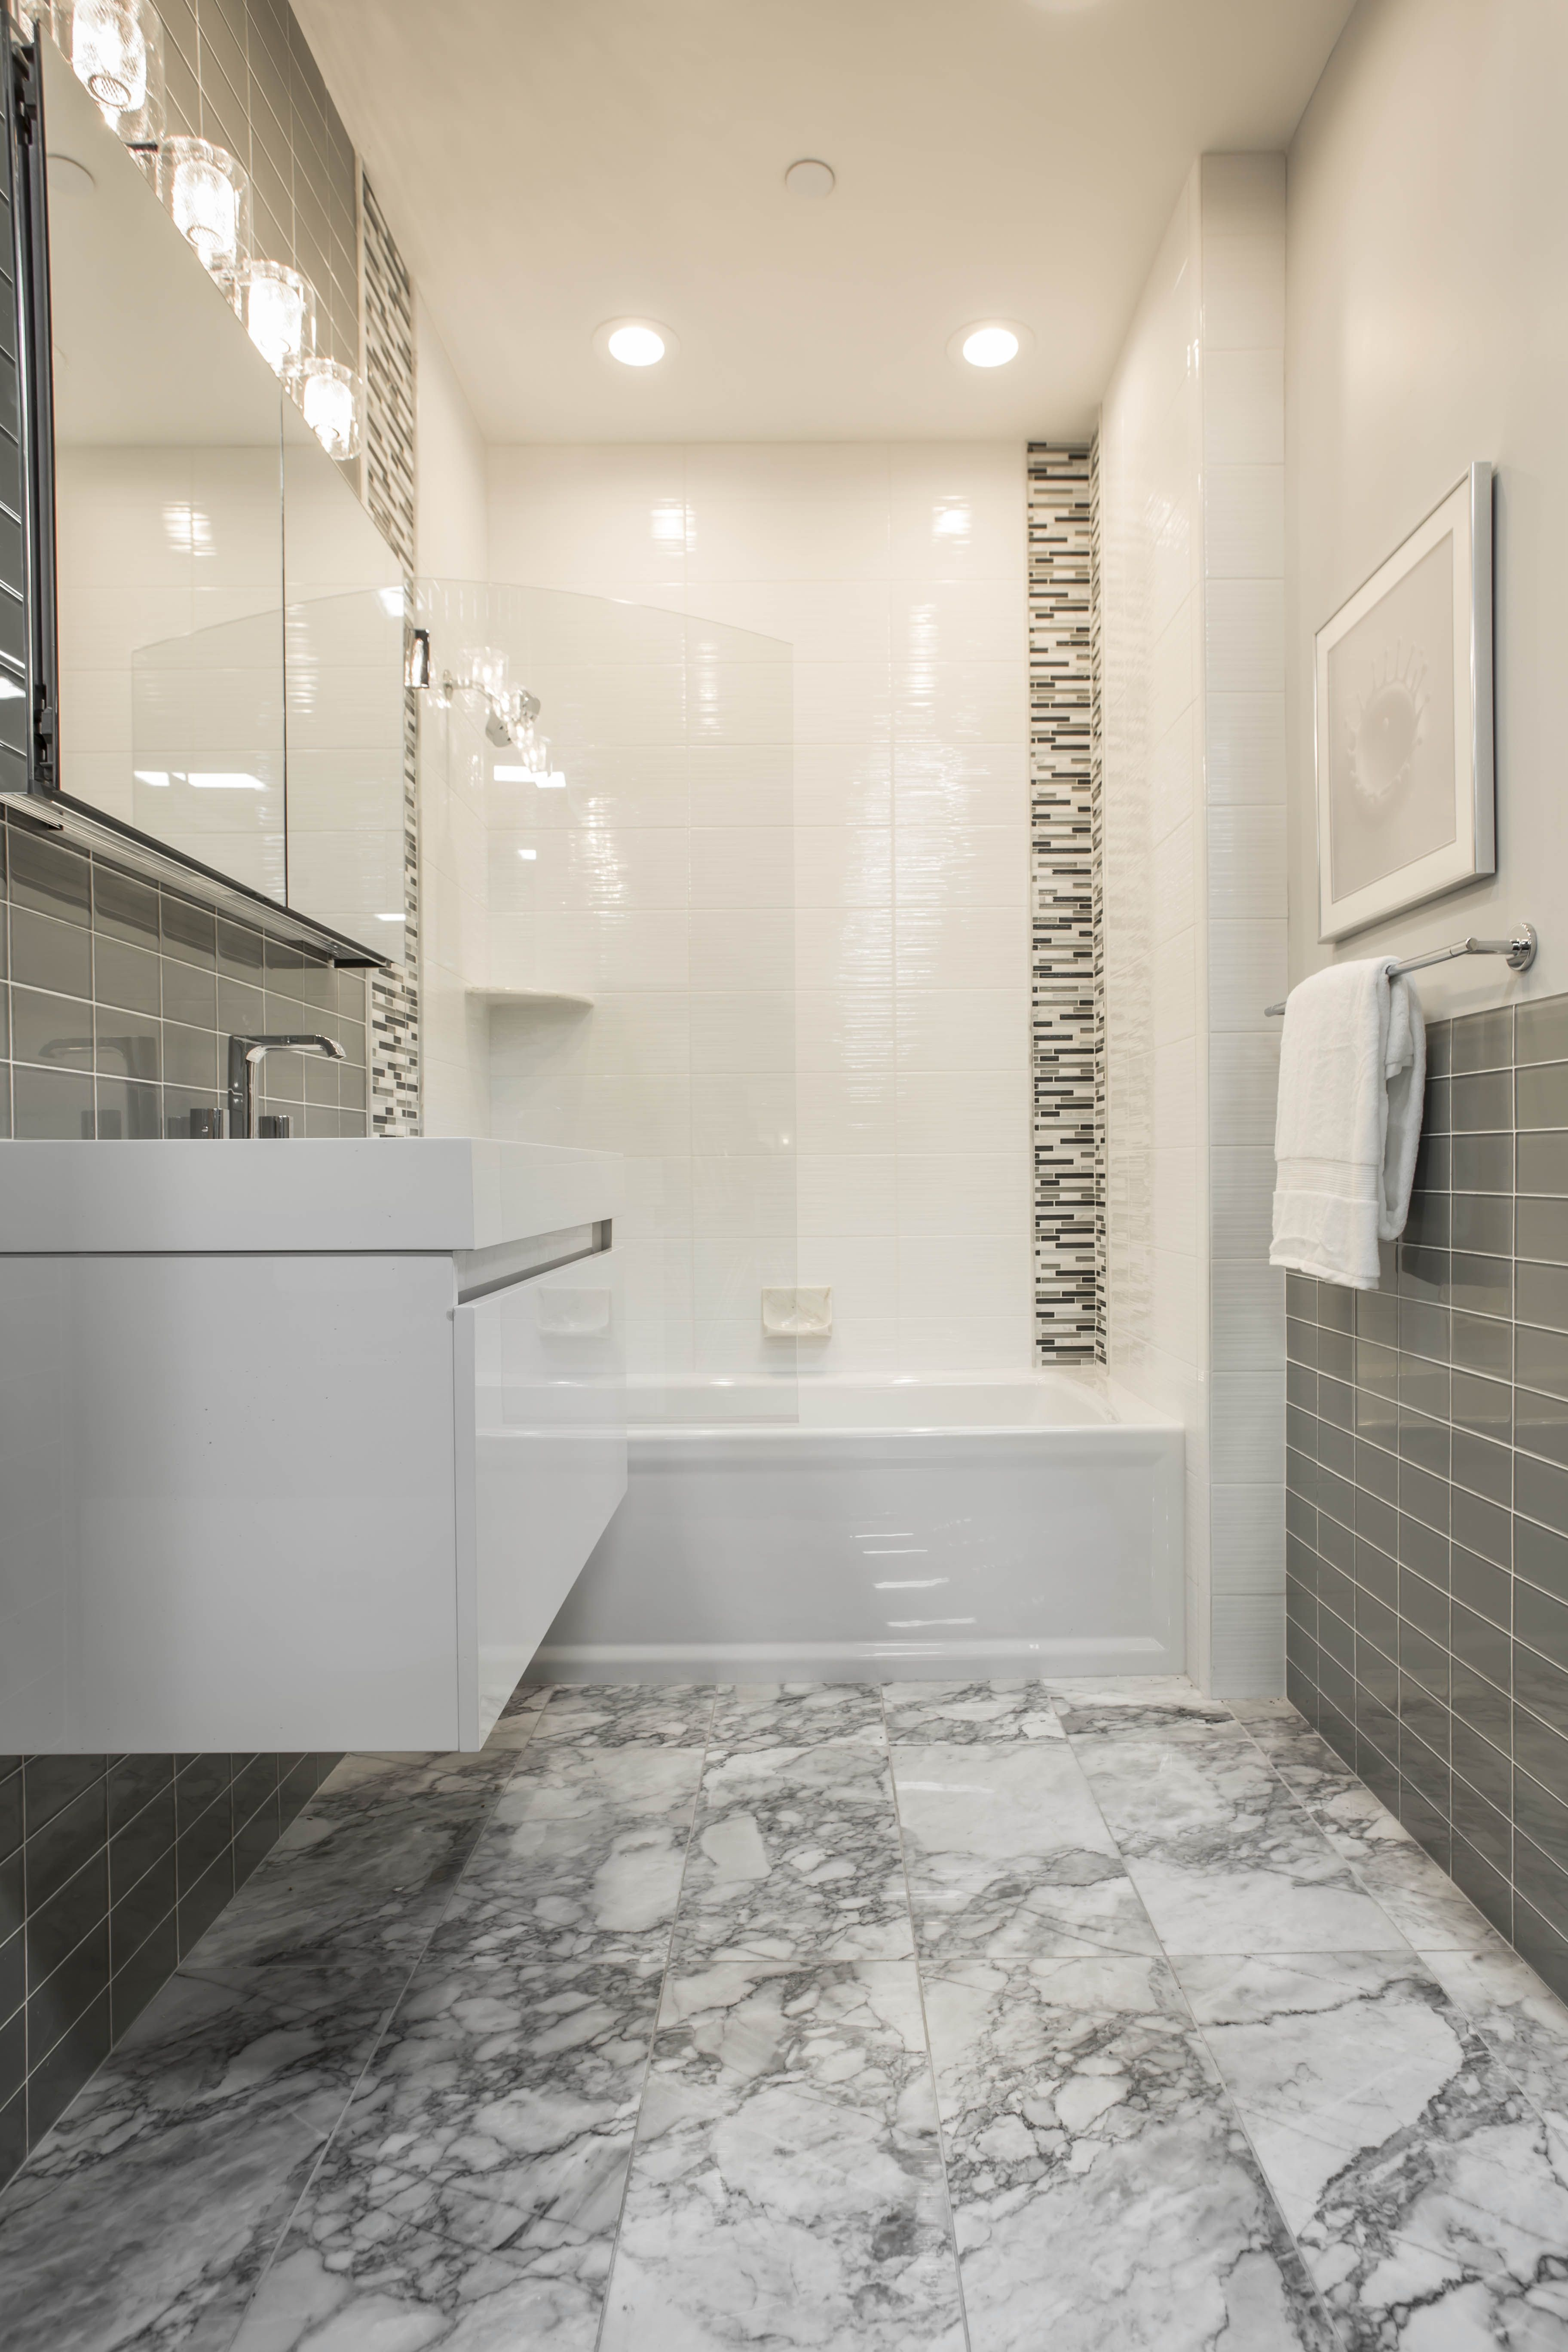 Mixing marble, glass and ceramic tiles adds interest and allows you ...